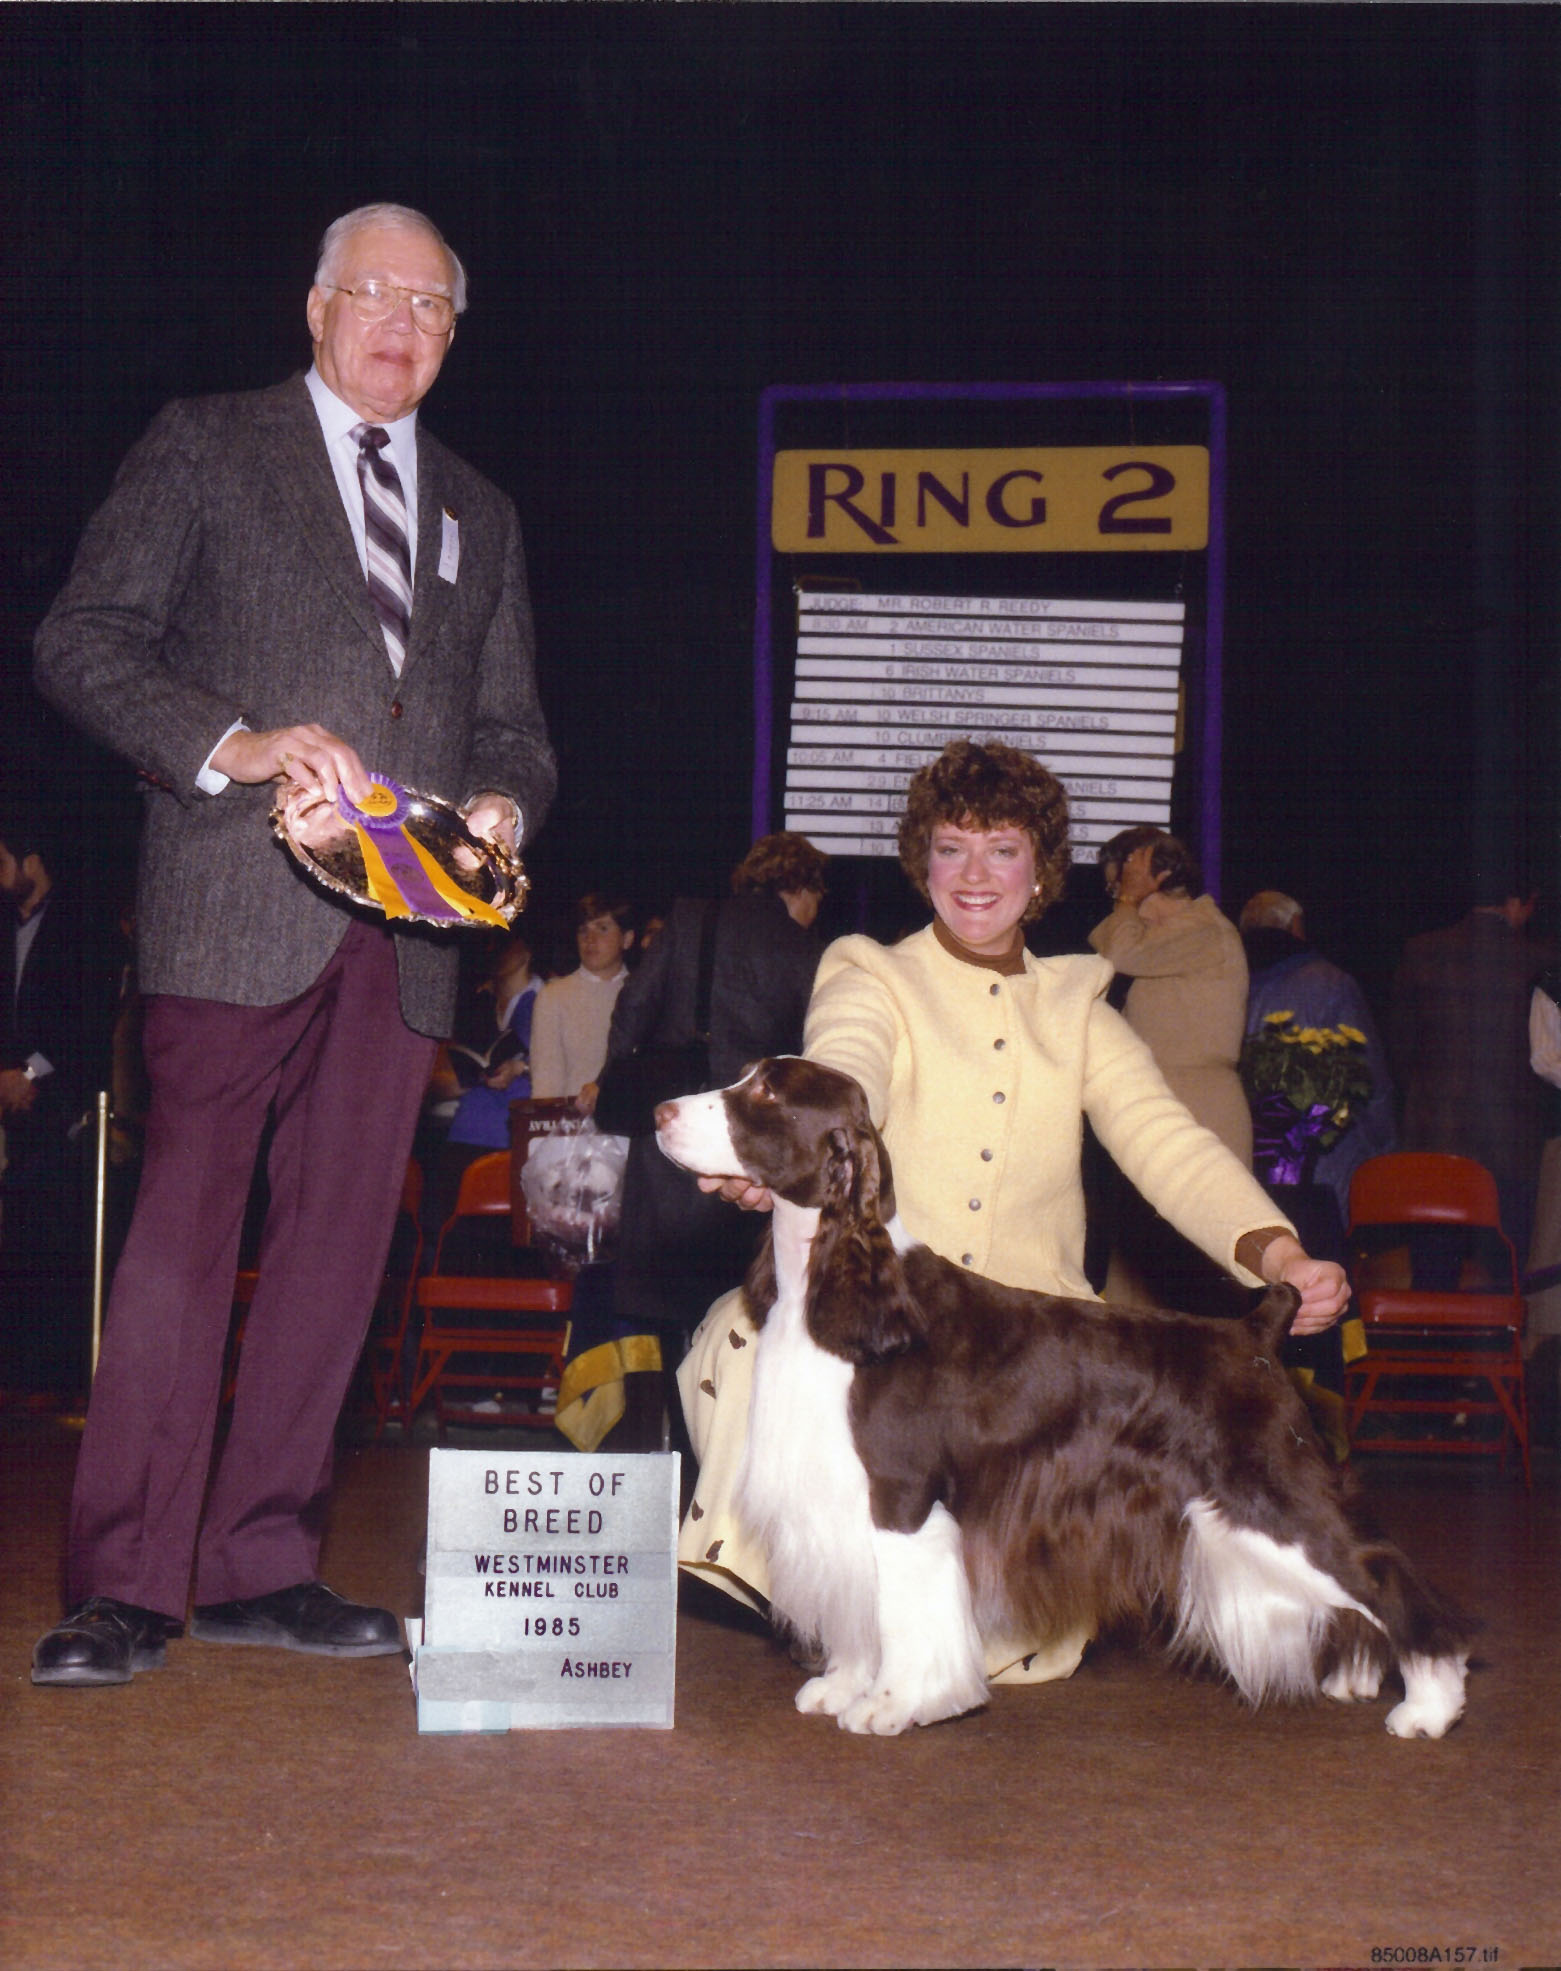 Best of Breed - Westminster Kennel Club 1985